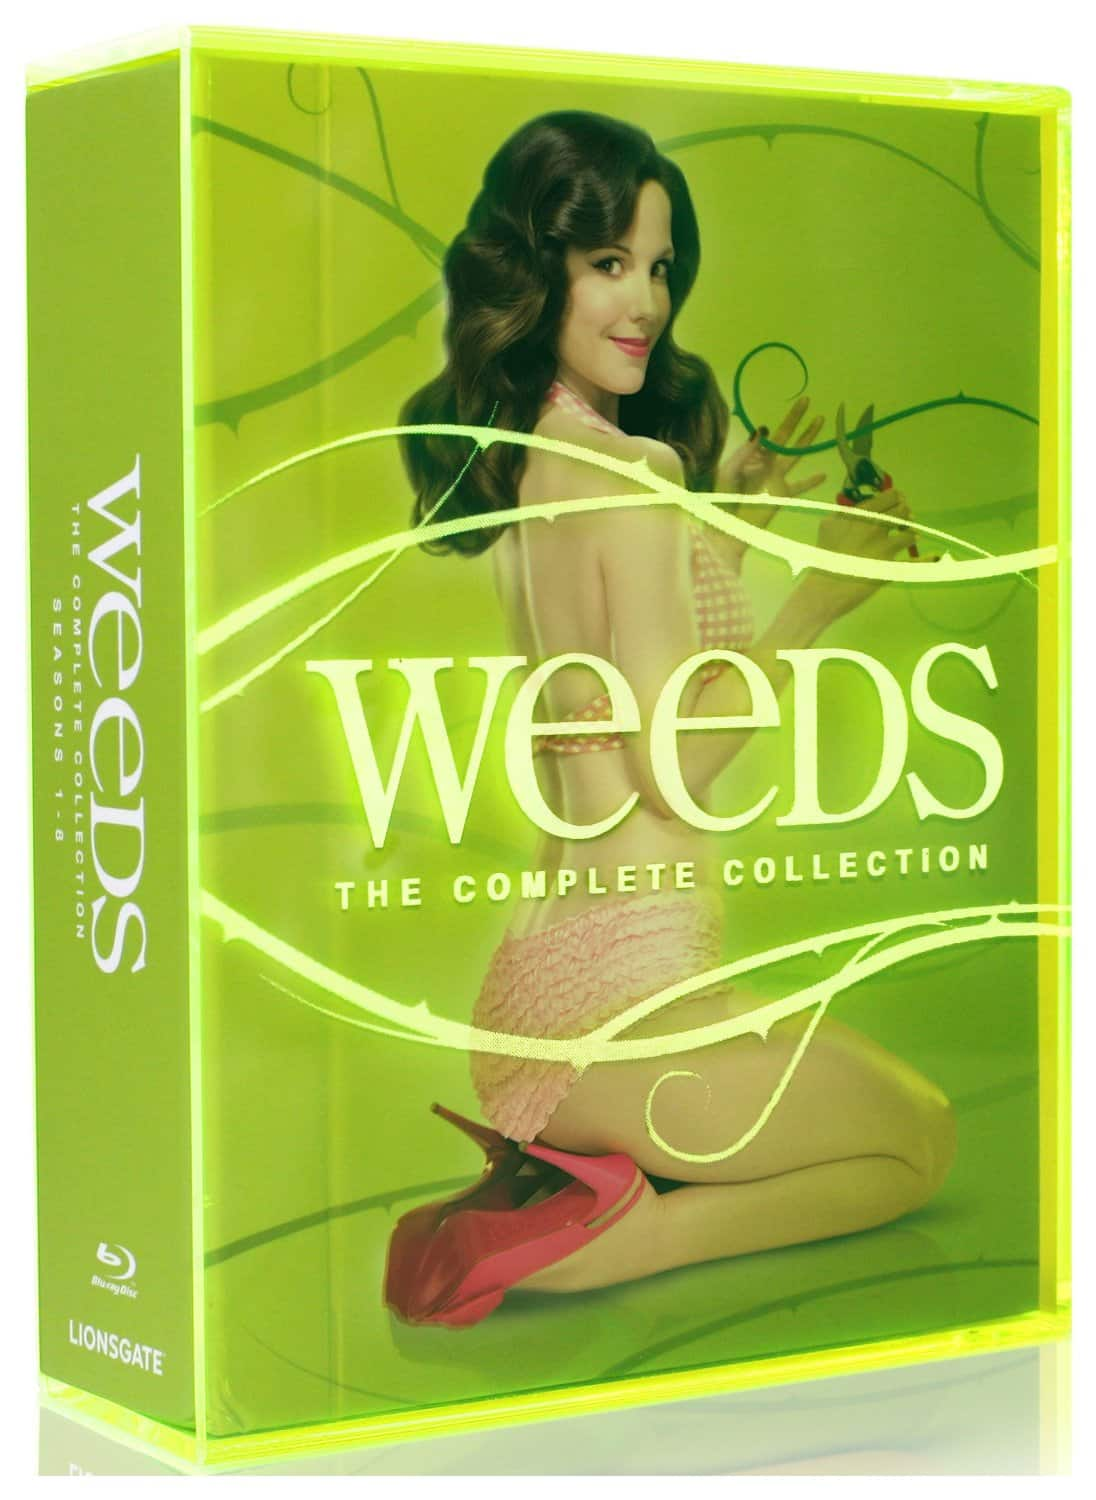 Weeds: The Complete Collection (Blu-ray/UV Digital Copy) $29.96 via Amazon